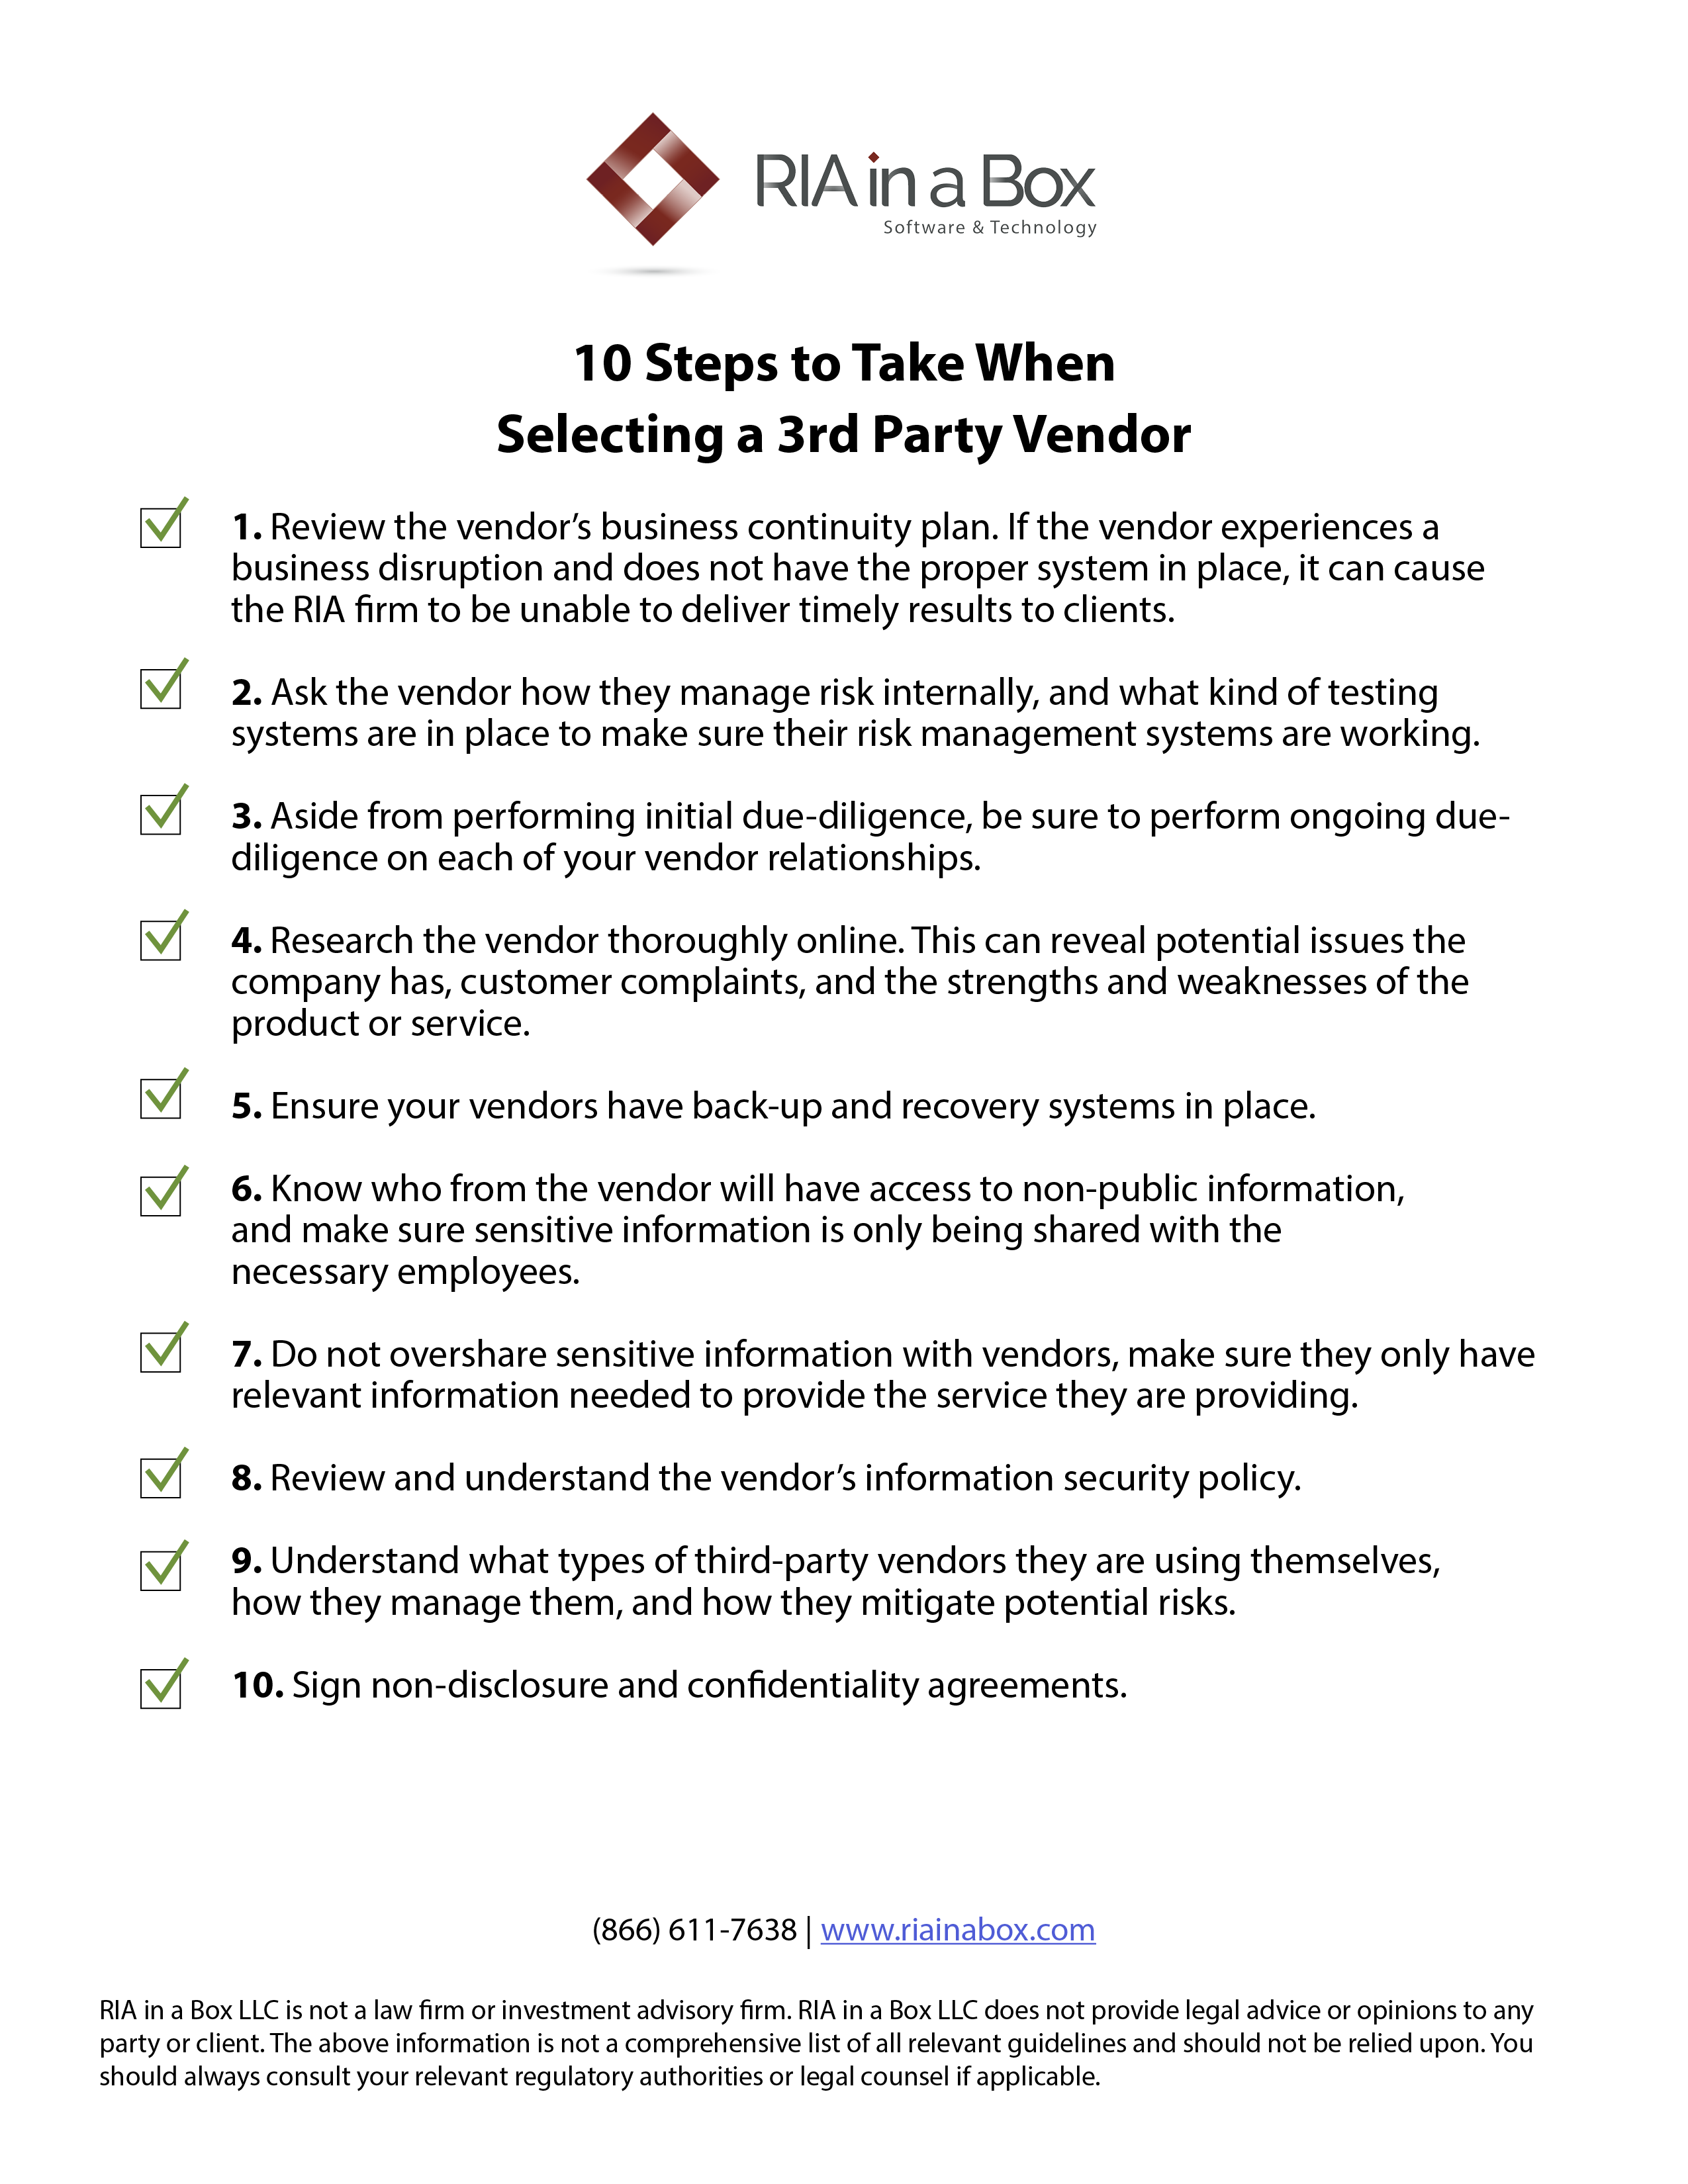 10 Steps to Take When Selecting a 3rd Party Vendor